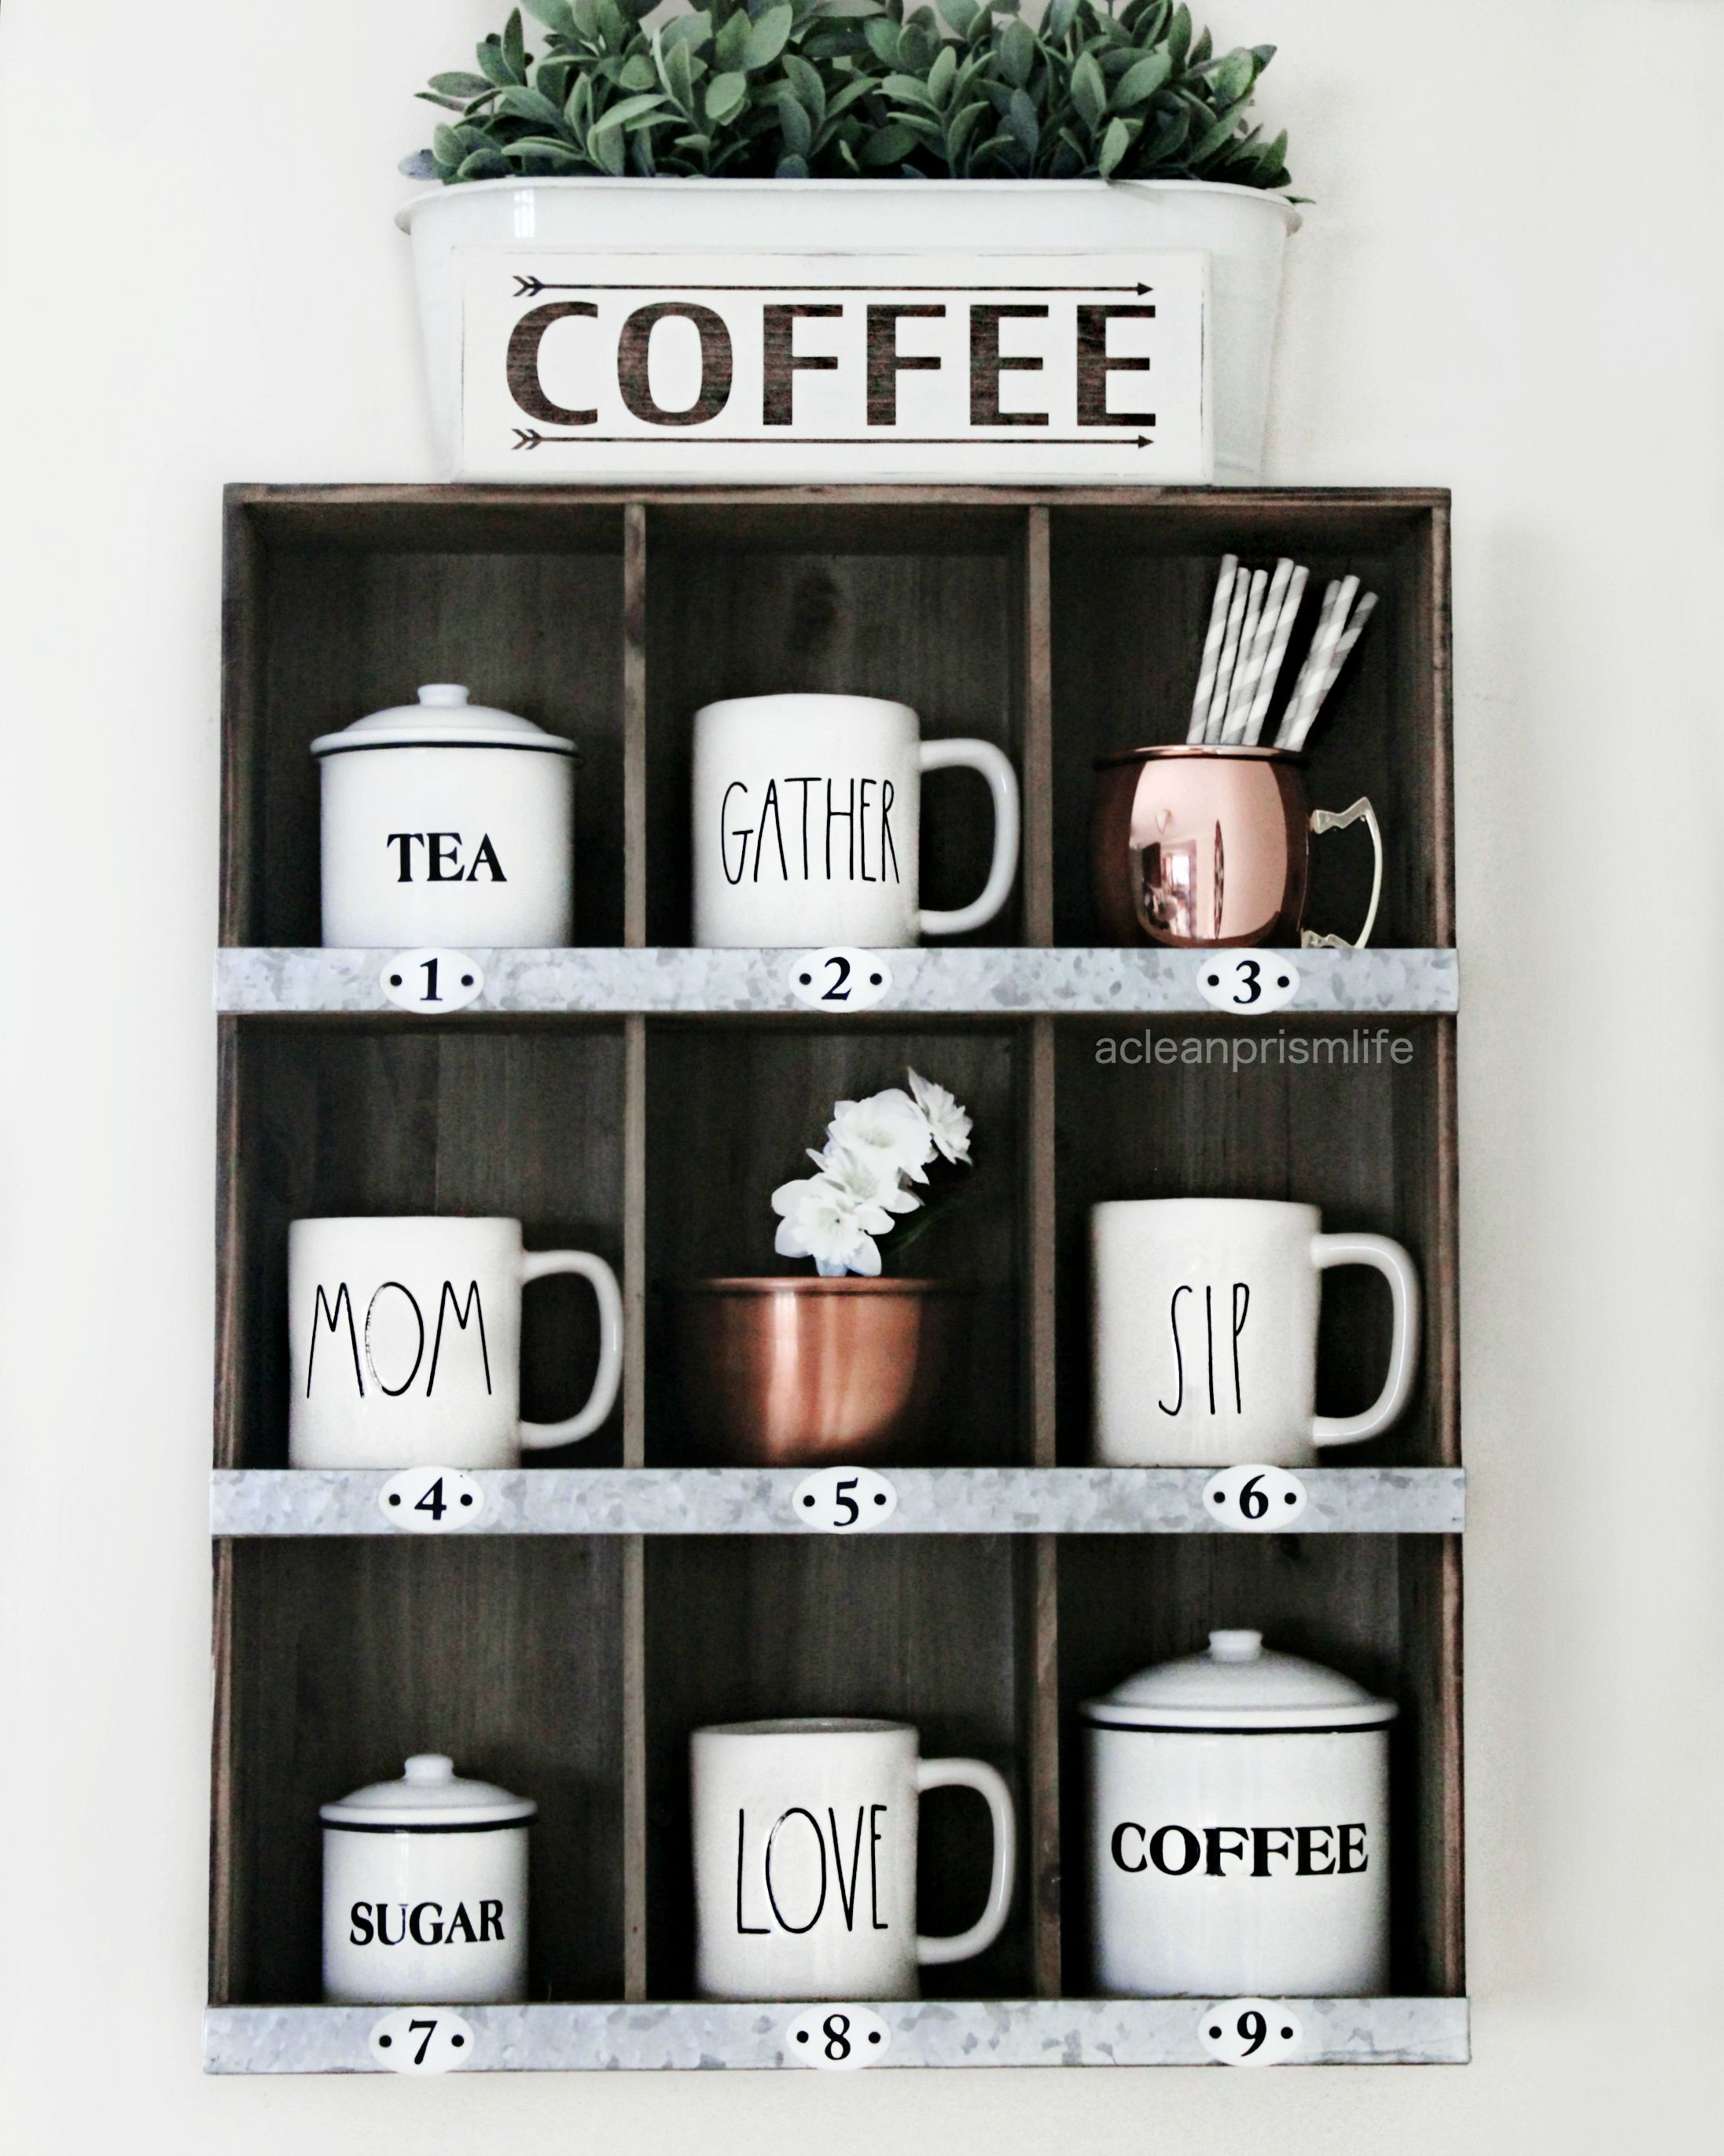 rae dunn clay coffee station modern farmhouse decor target shelf numbered cubbies canisters home styling www acleanprismlife com